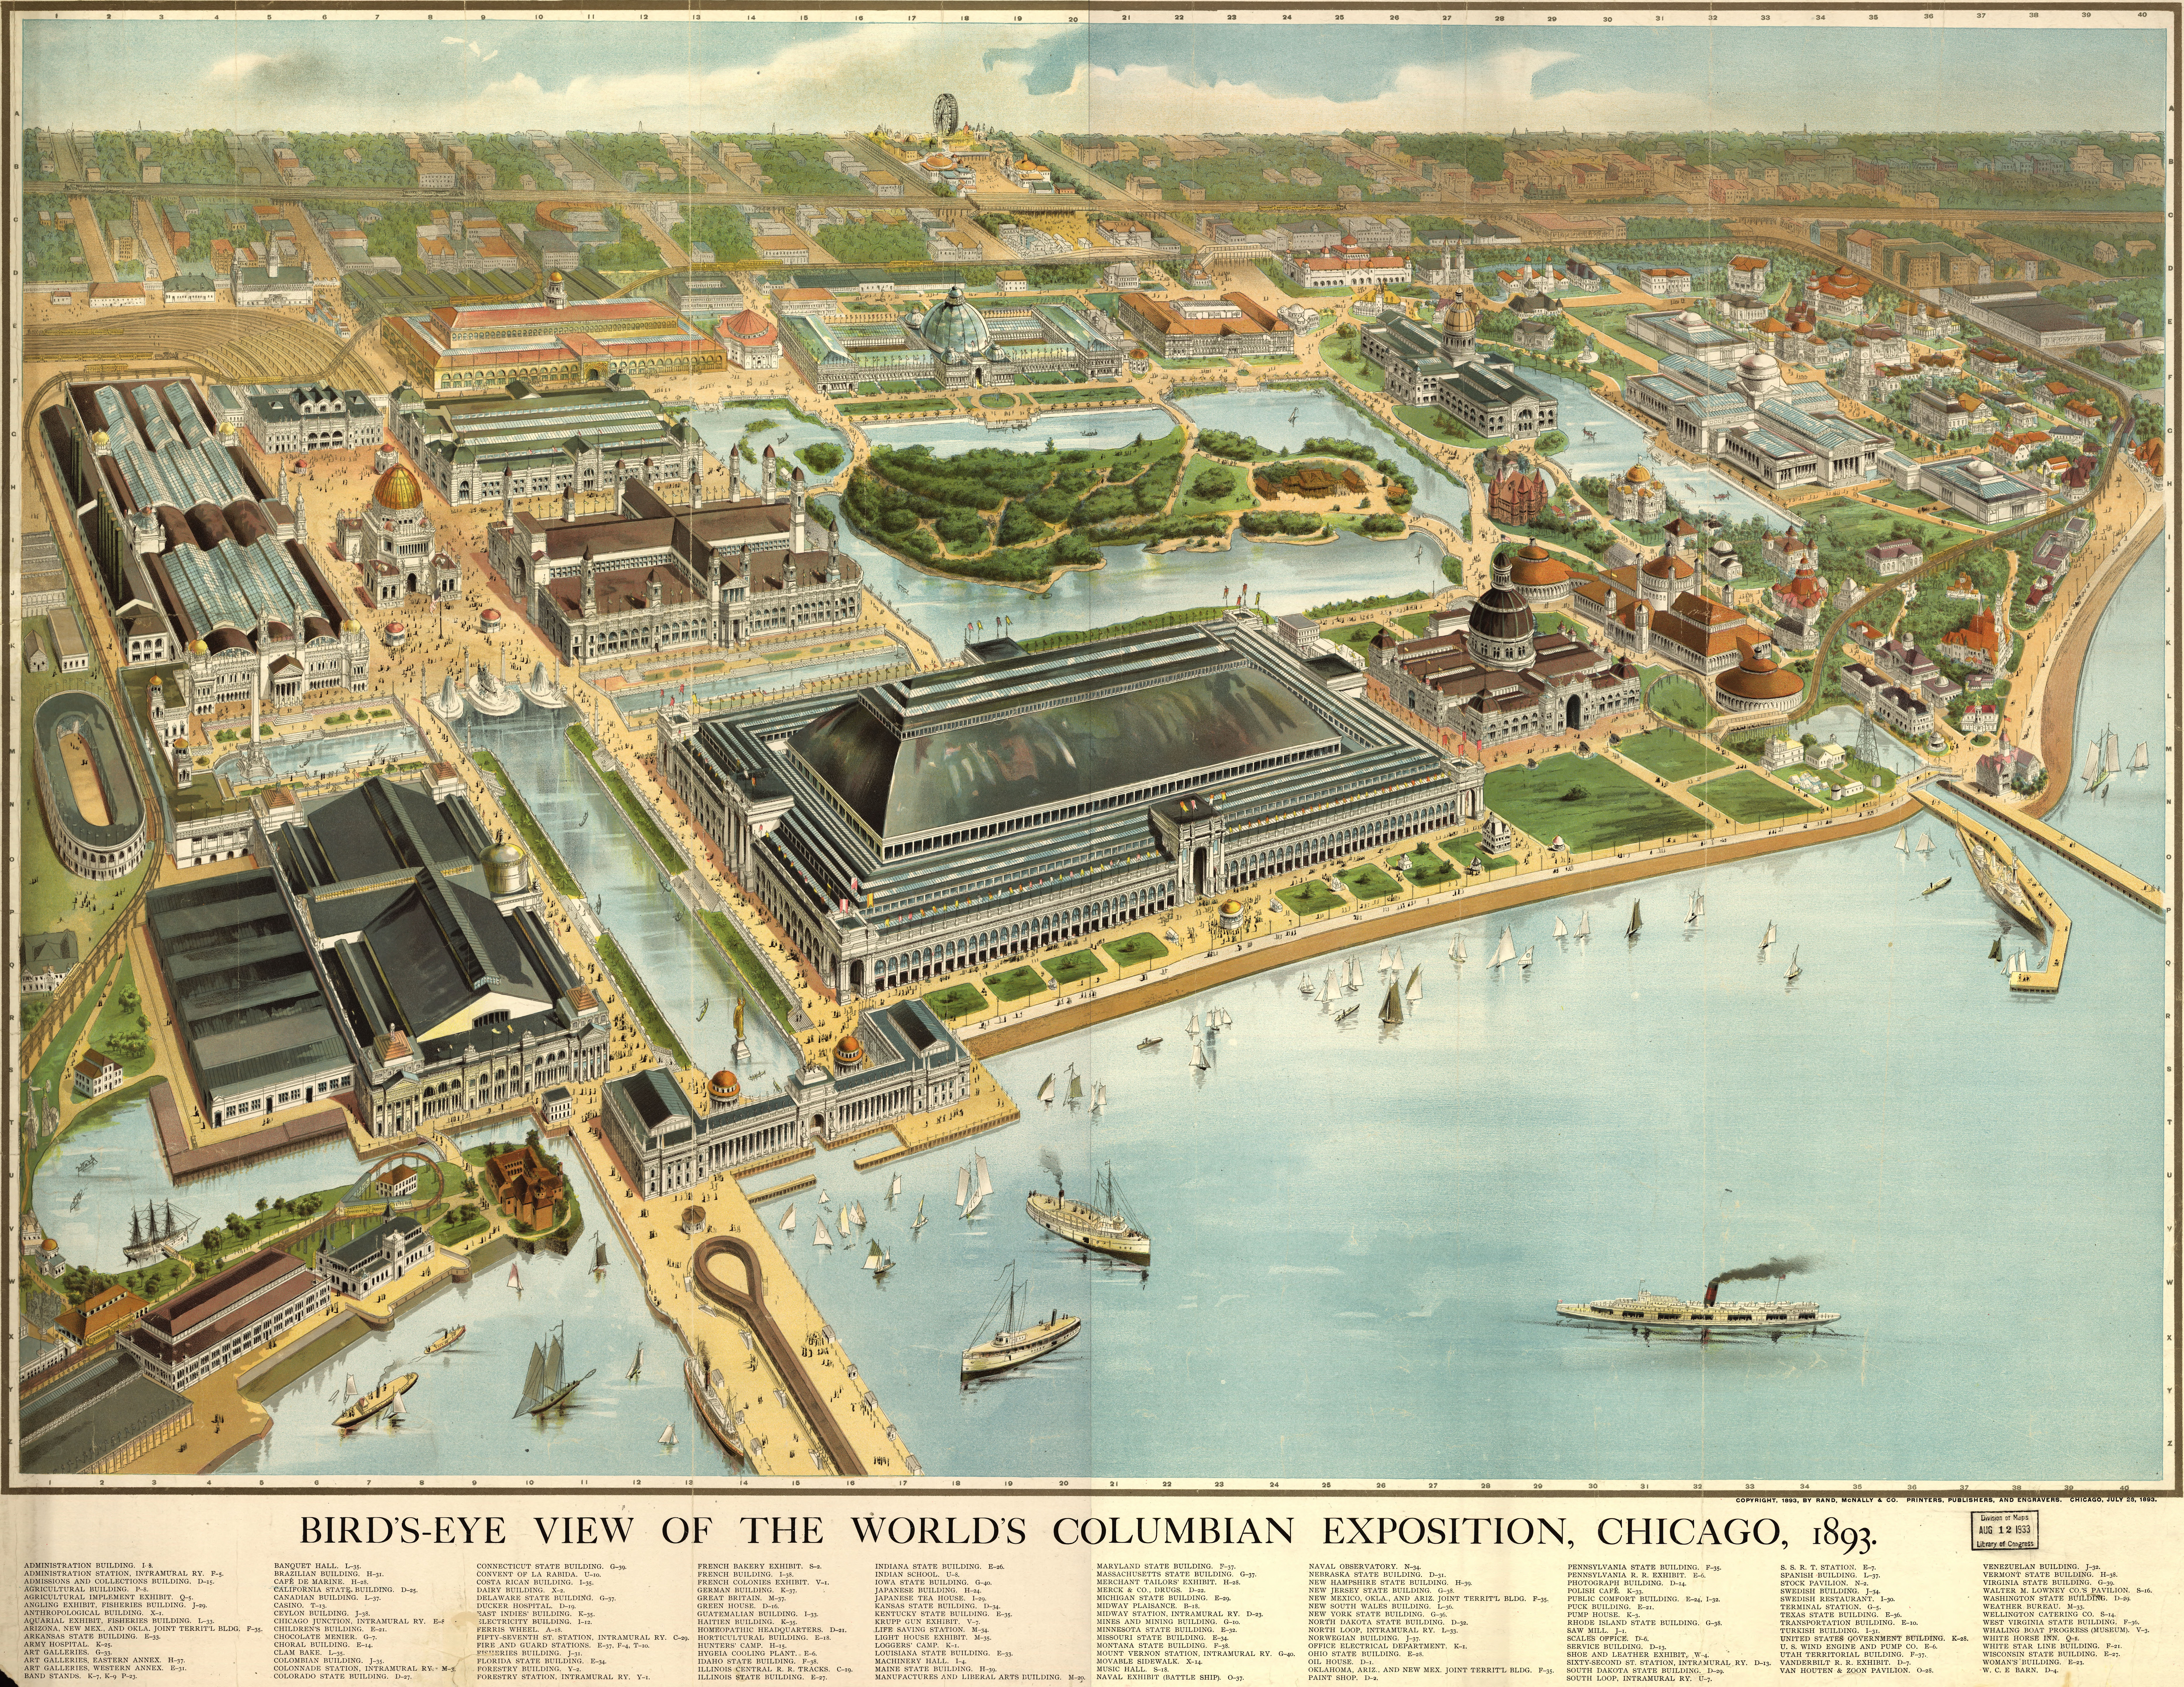 Vintage Infographic The World's Columbian Exposition, Chicago (1893)